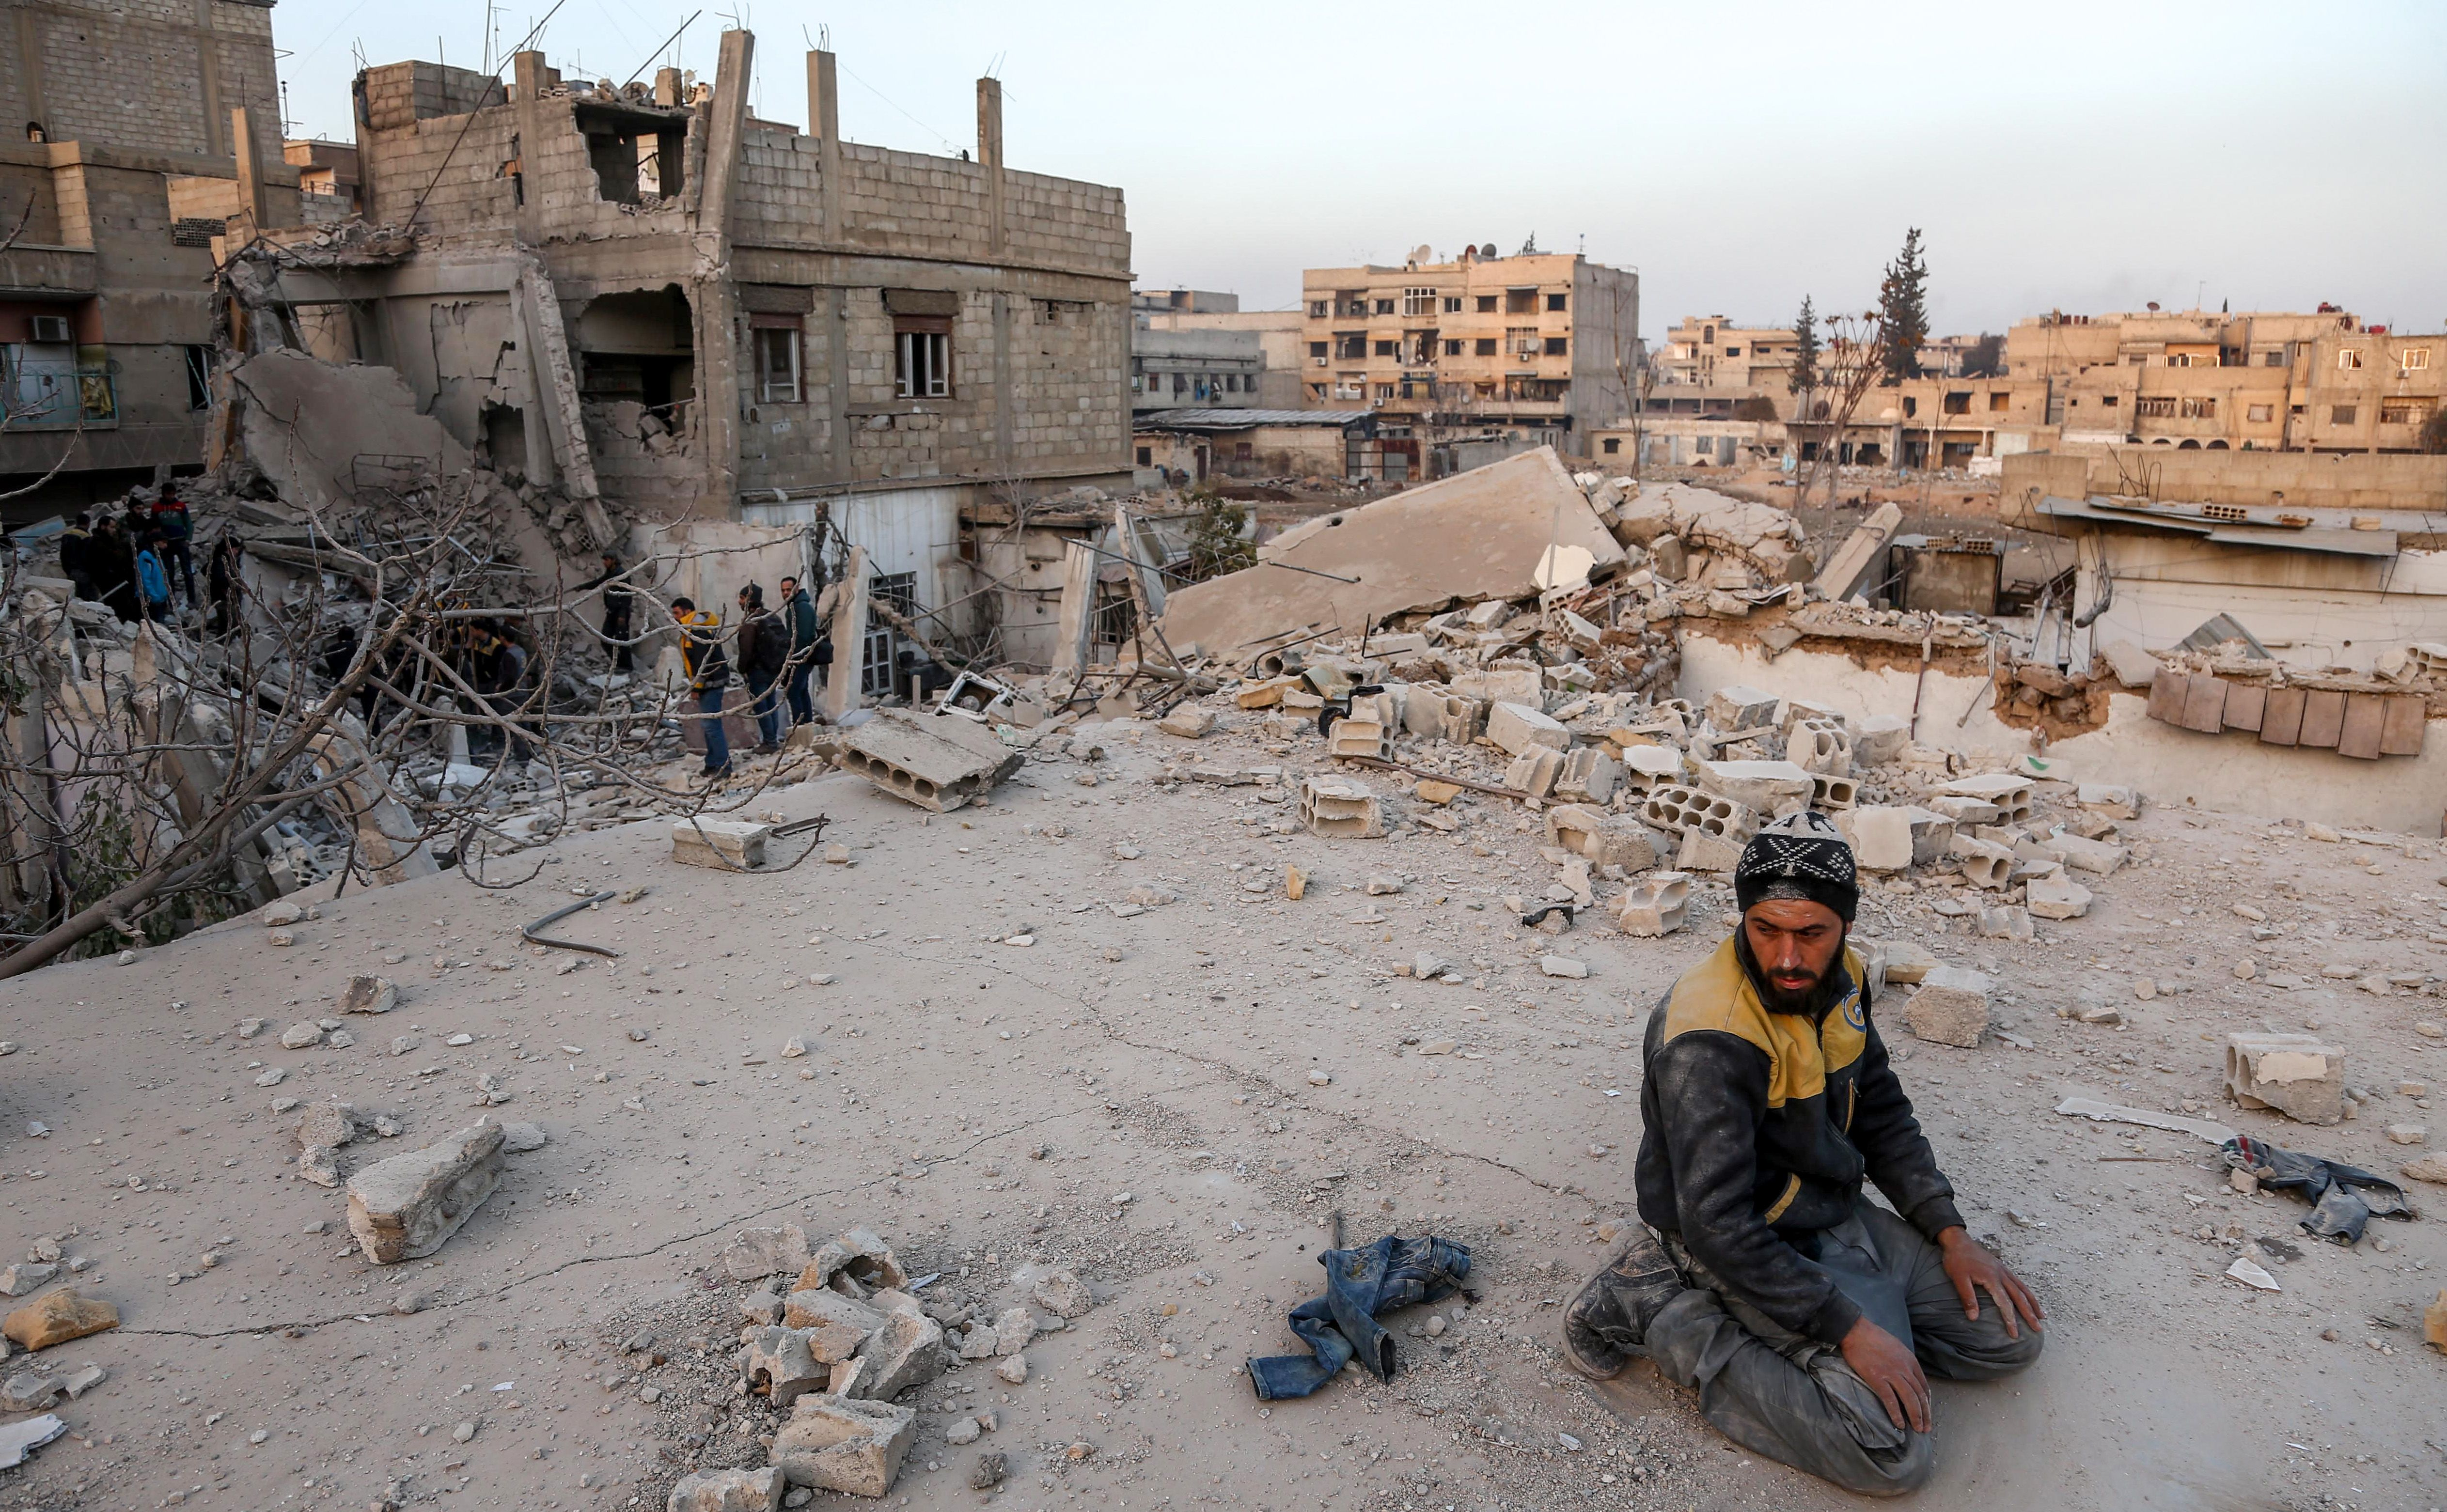 A Syrian civil defense volunteer performs ritual sunset prayers next to the site of a building that collapsed following reported regime air strikes in the rebel-held town of Arbin, in the besieged Eastern Ghouta region on the outskirts of the capital Damascus, on February 6, 2018.